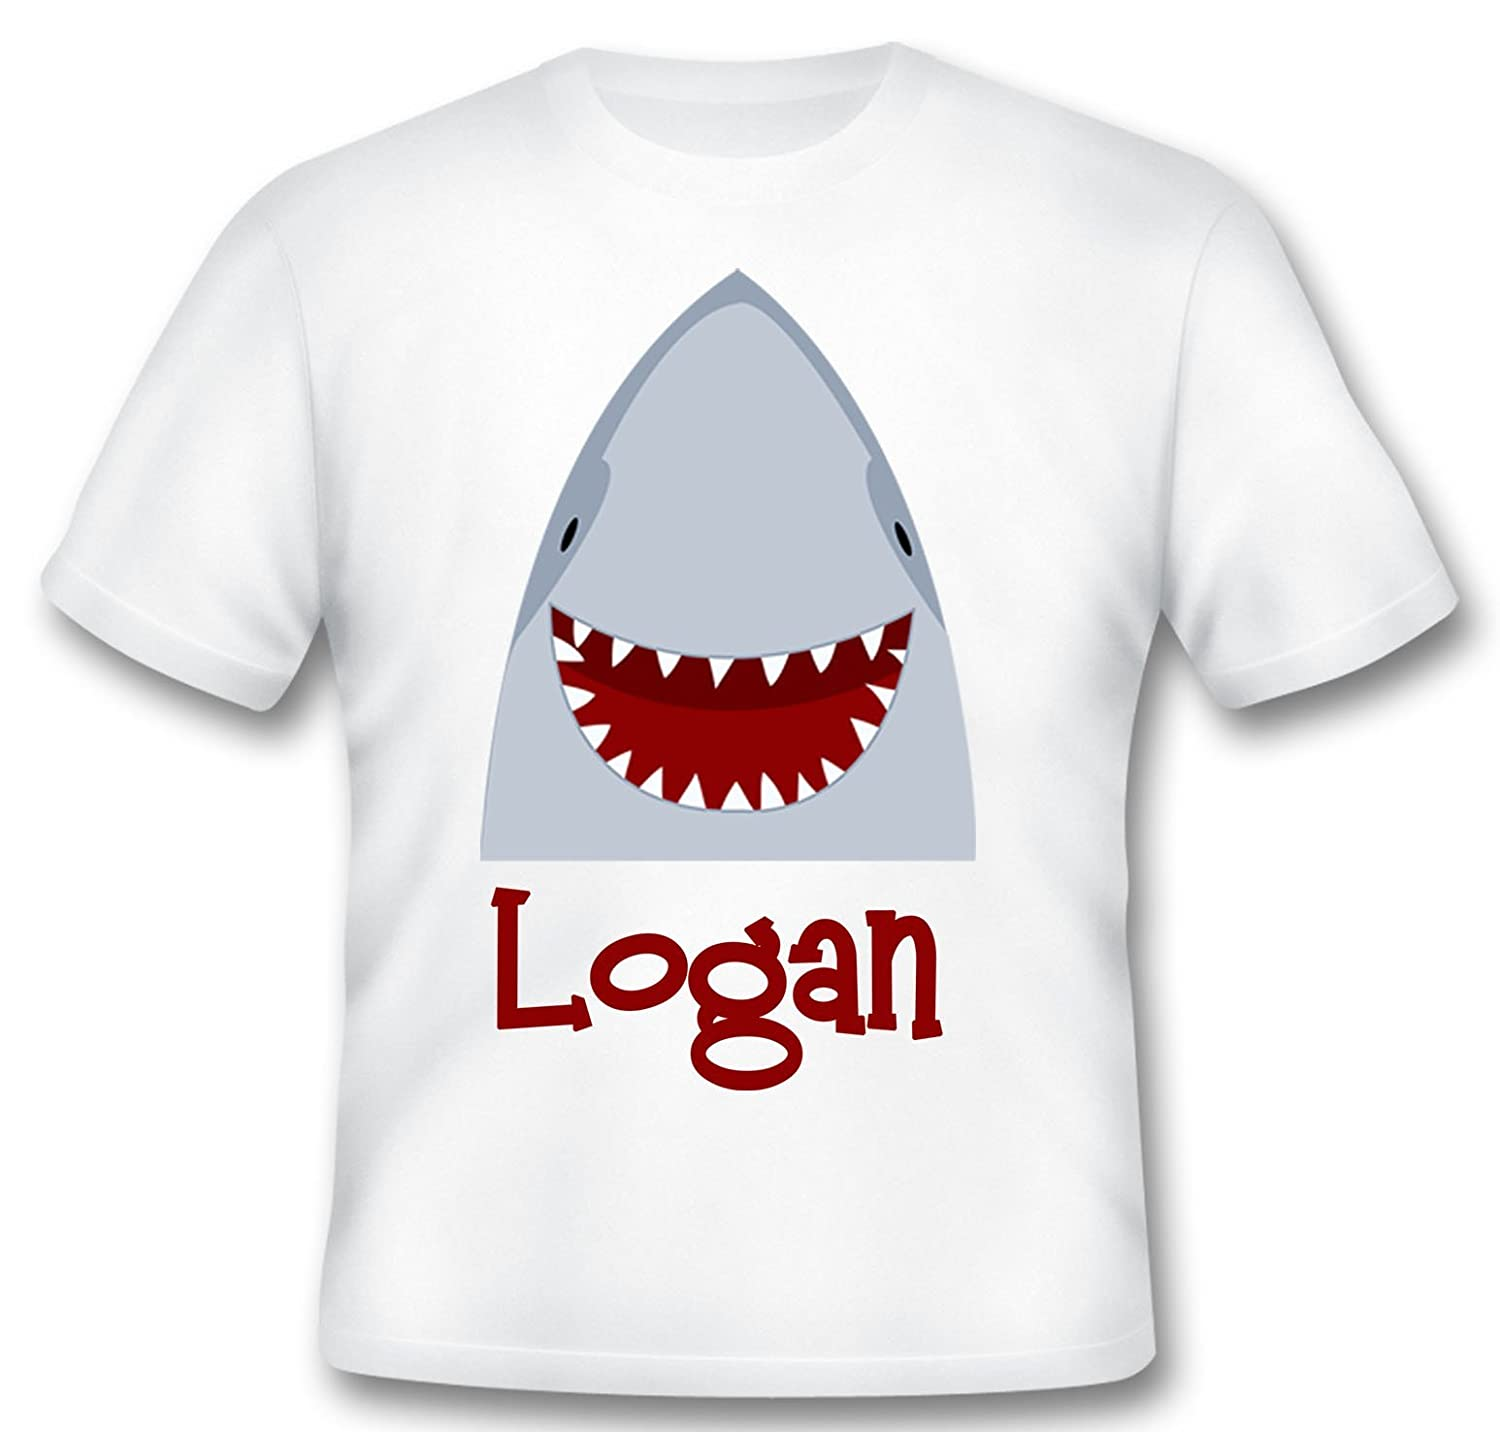 Whale Happy Birthday Custom Birthday T-Shirt Customized with any name and age